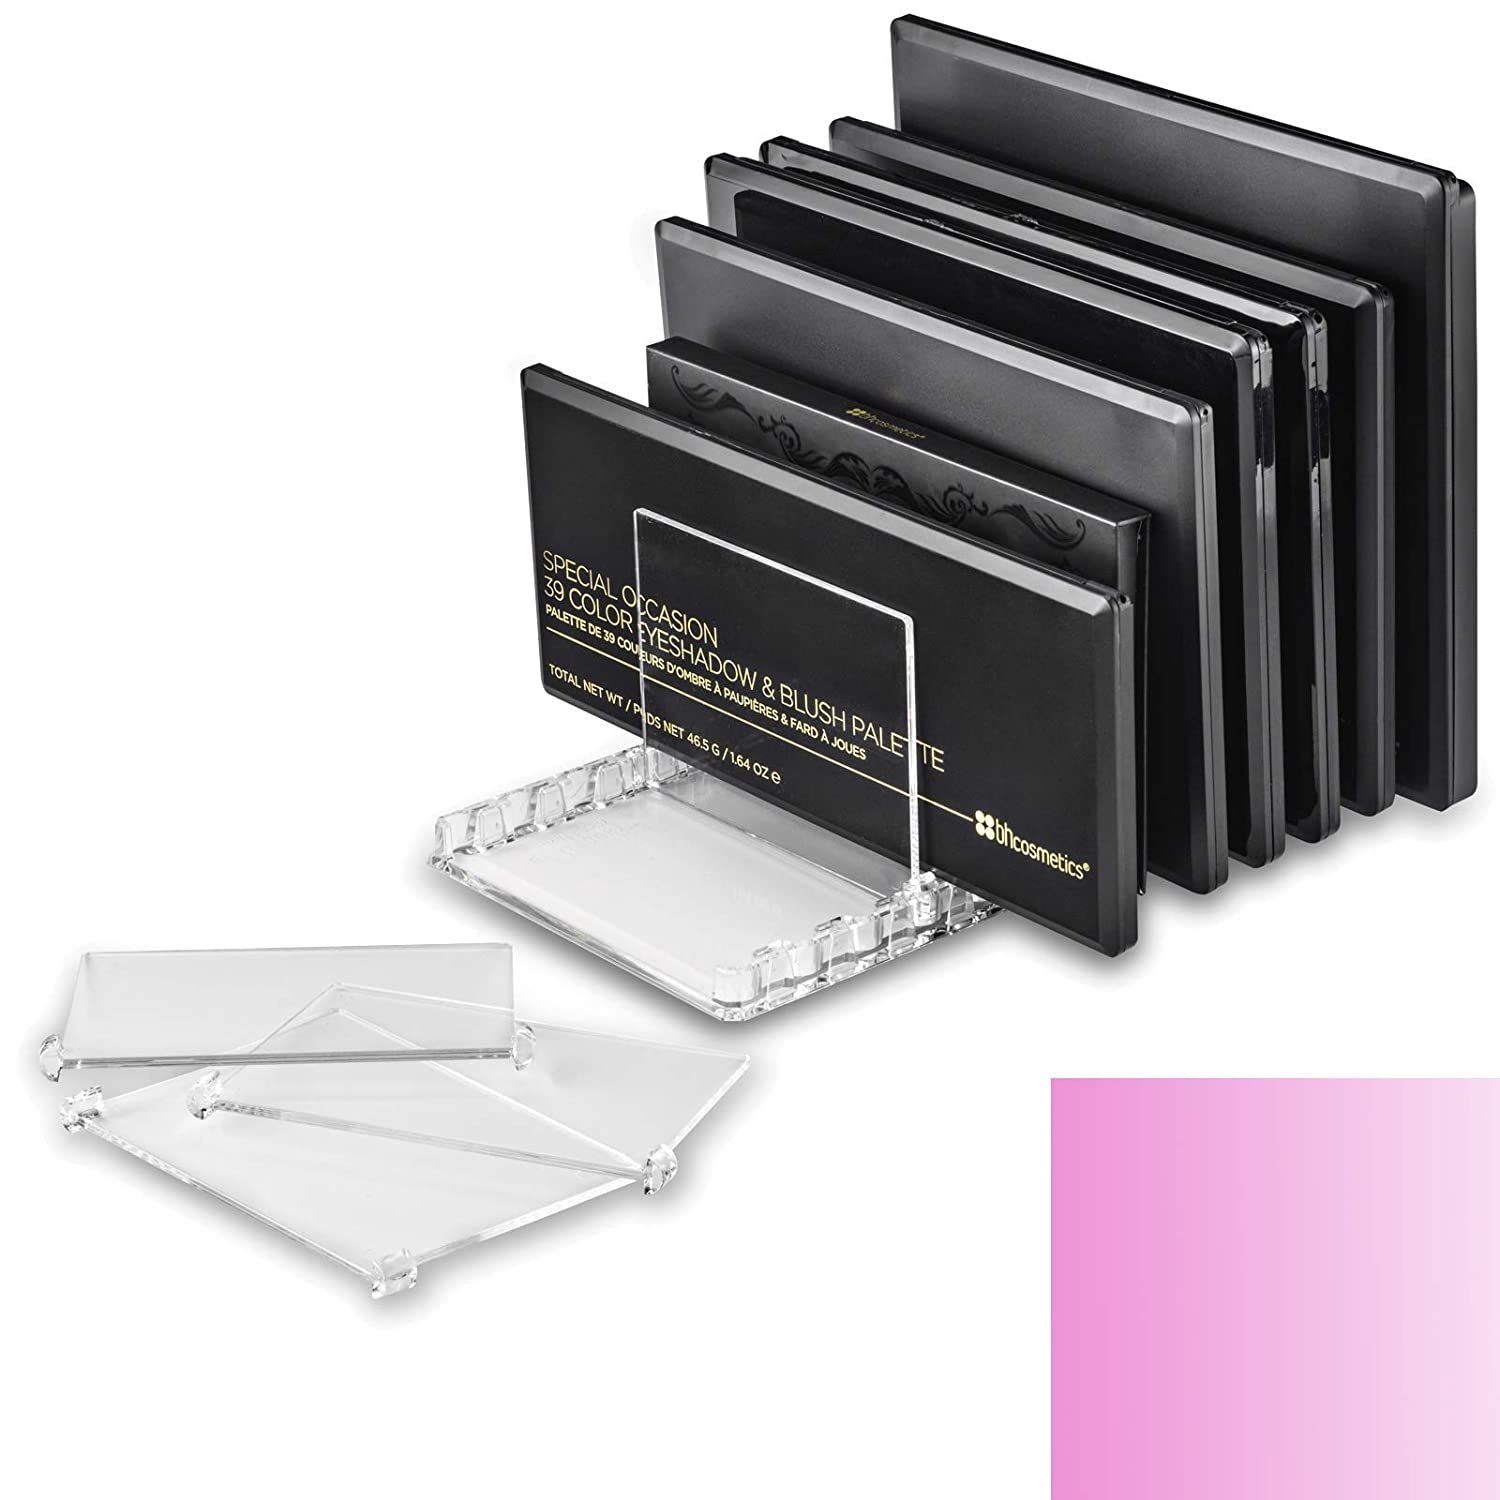 byAlegory Acrylic Makeup Palette Organizer With Removable Dividers   10 Space Storage Fits All Palette Sizes (PINK CLEAR)